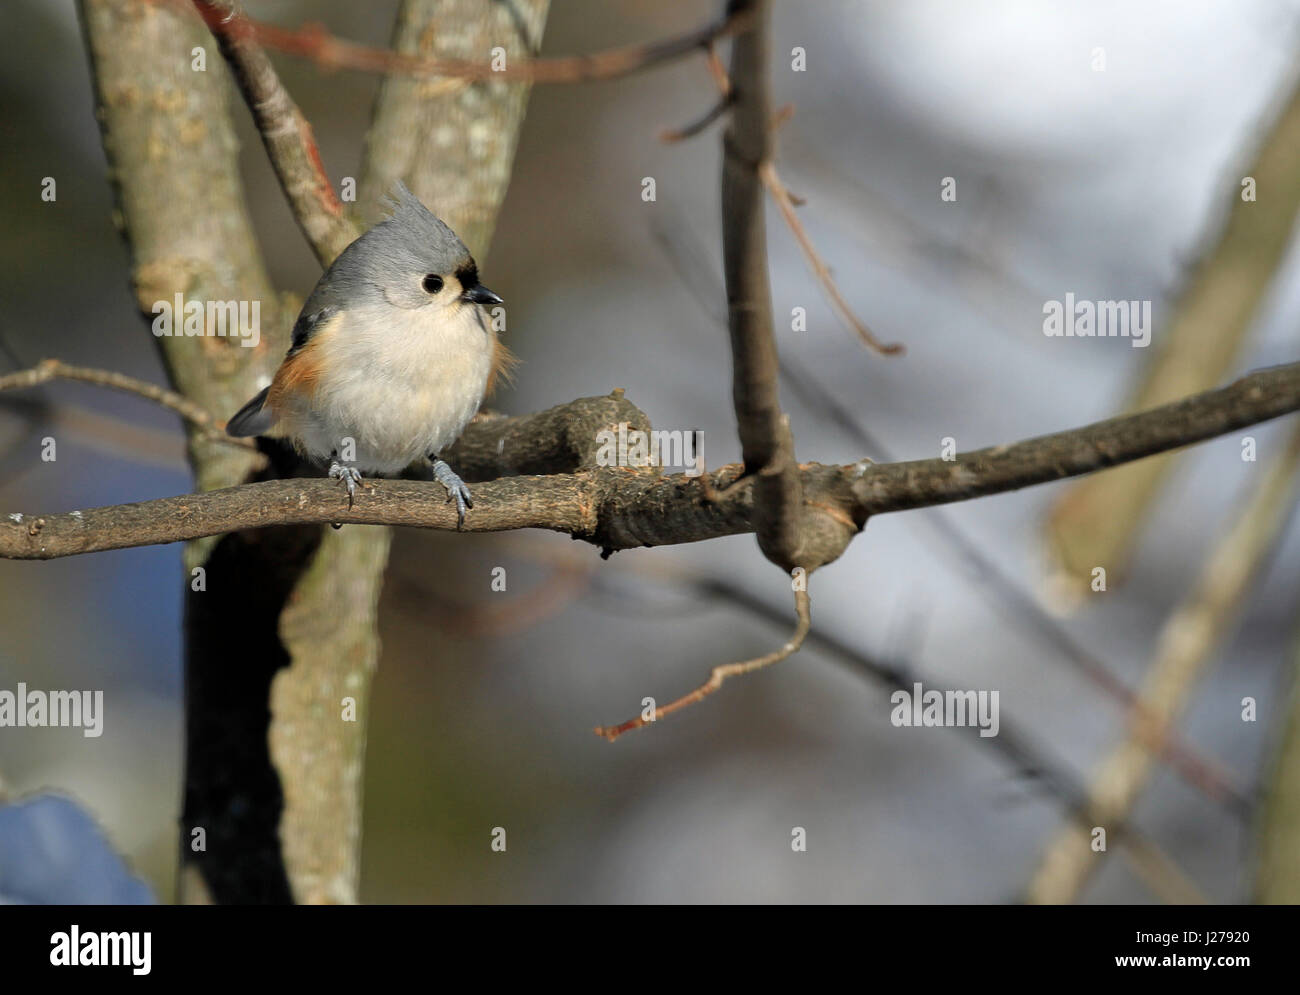 Tufted Titmouse (Baeolophus bicolor) perched on the branch of a maple tree in winter Stock Photo